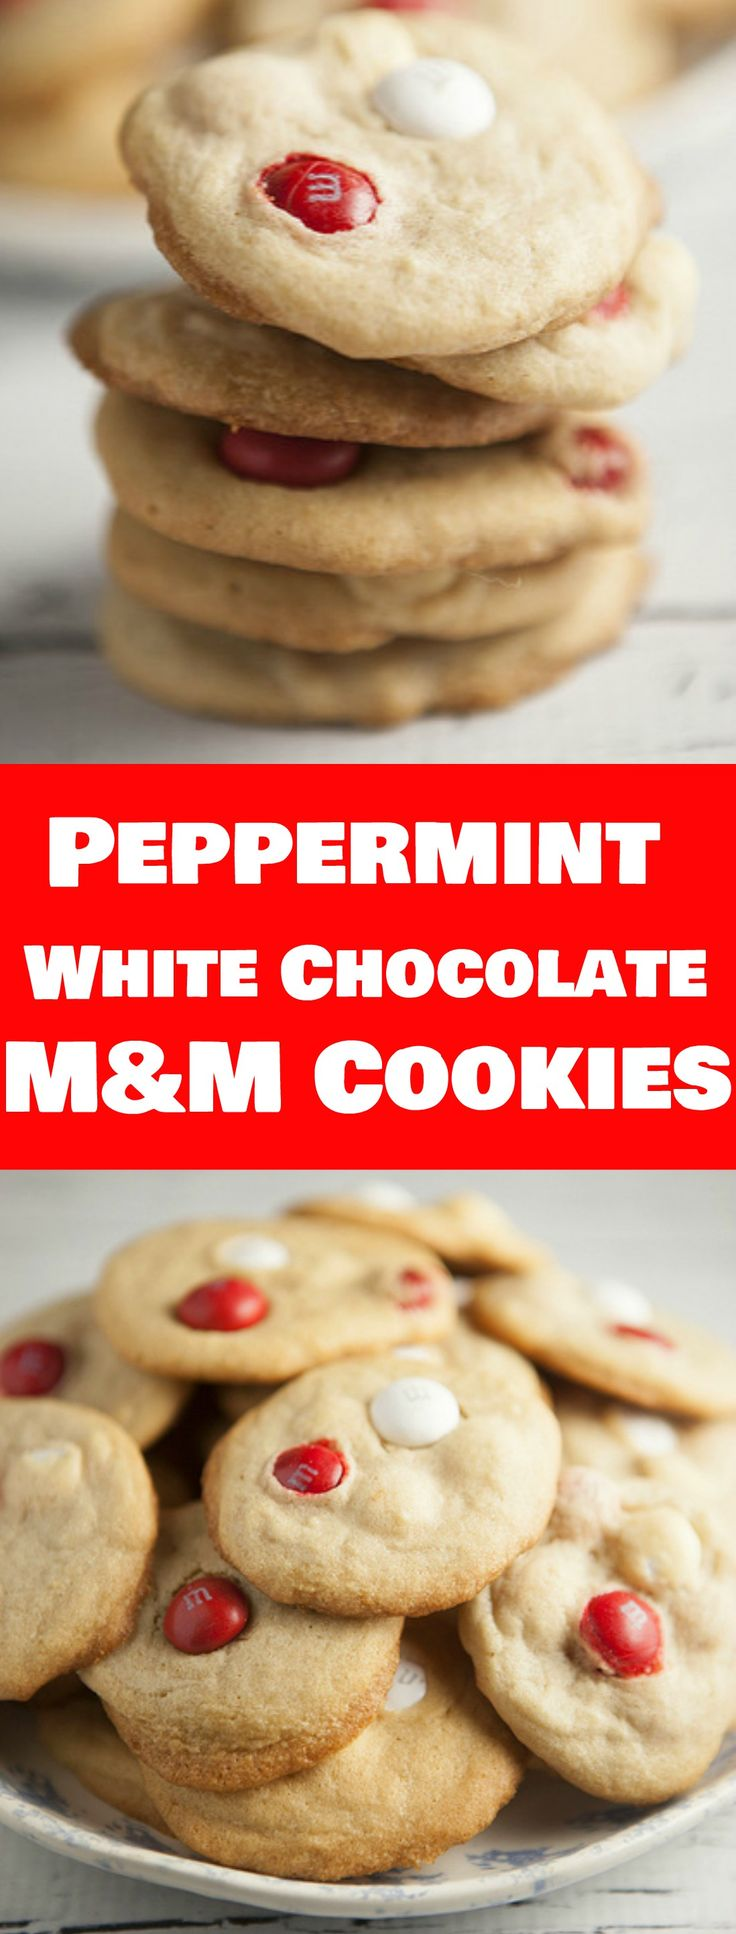 Peppermint White Chocolate M&M Cookies | Recipe | White chocolate ...